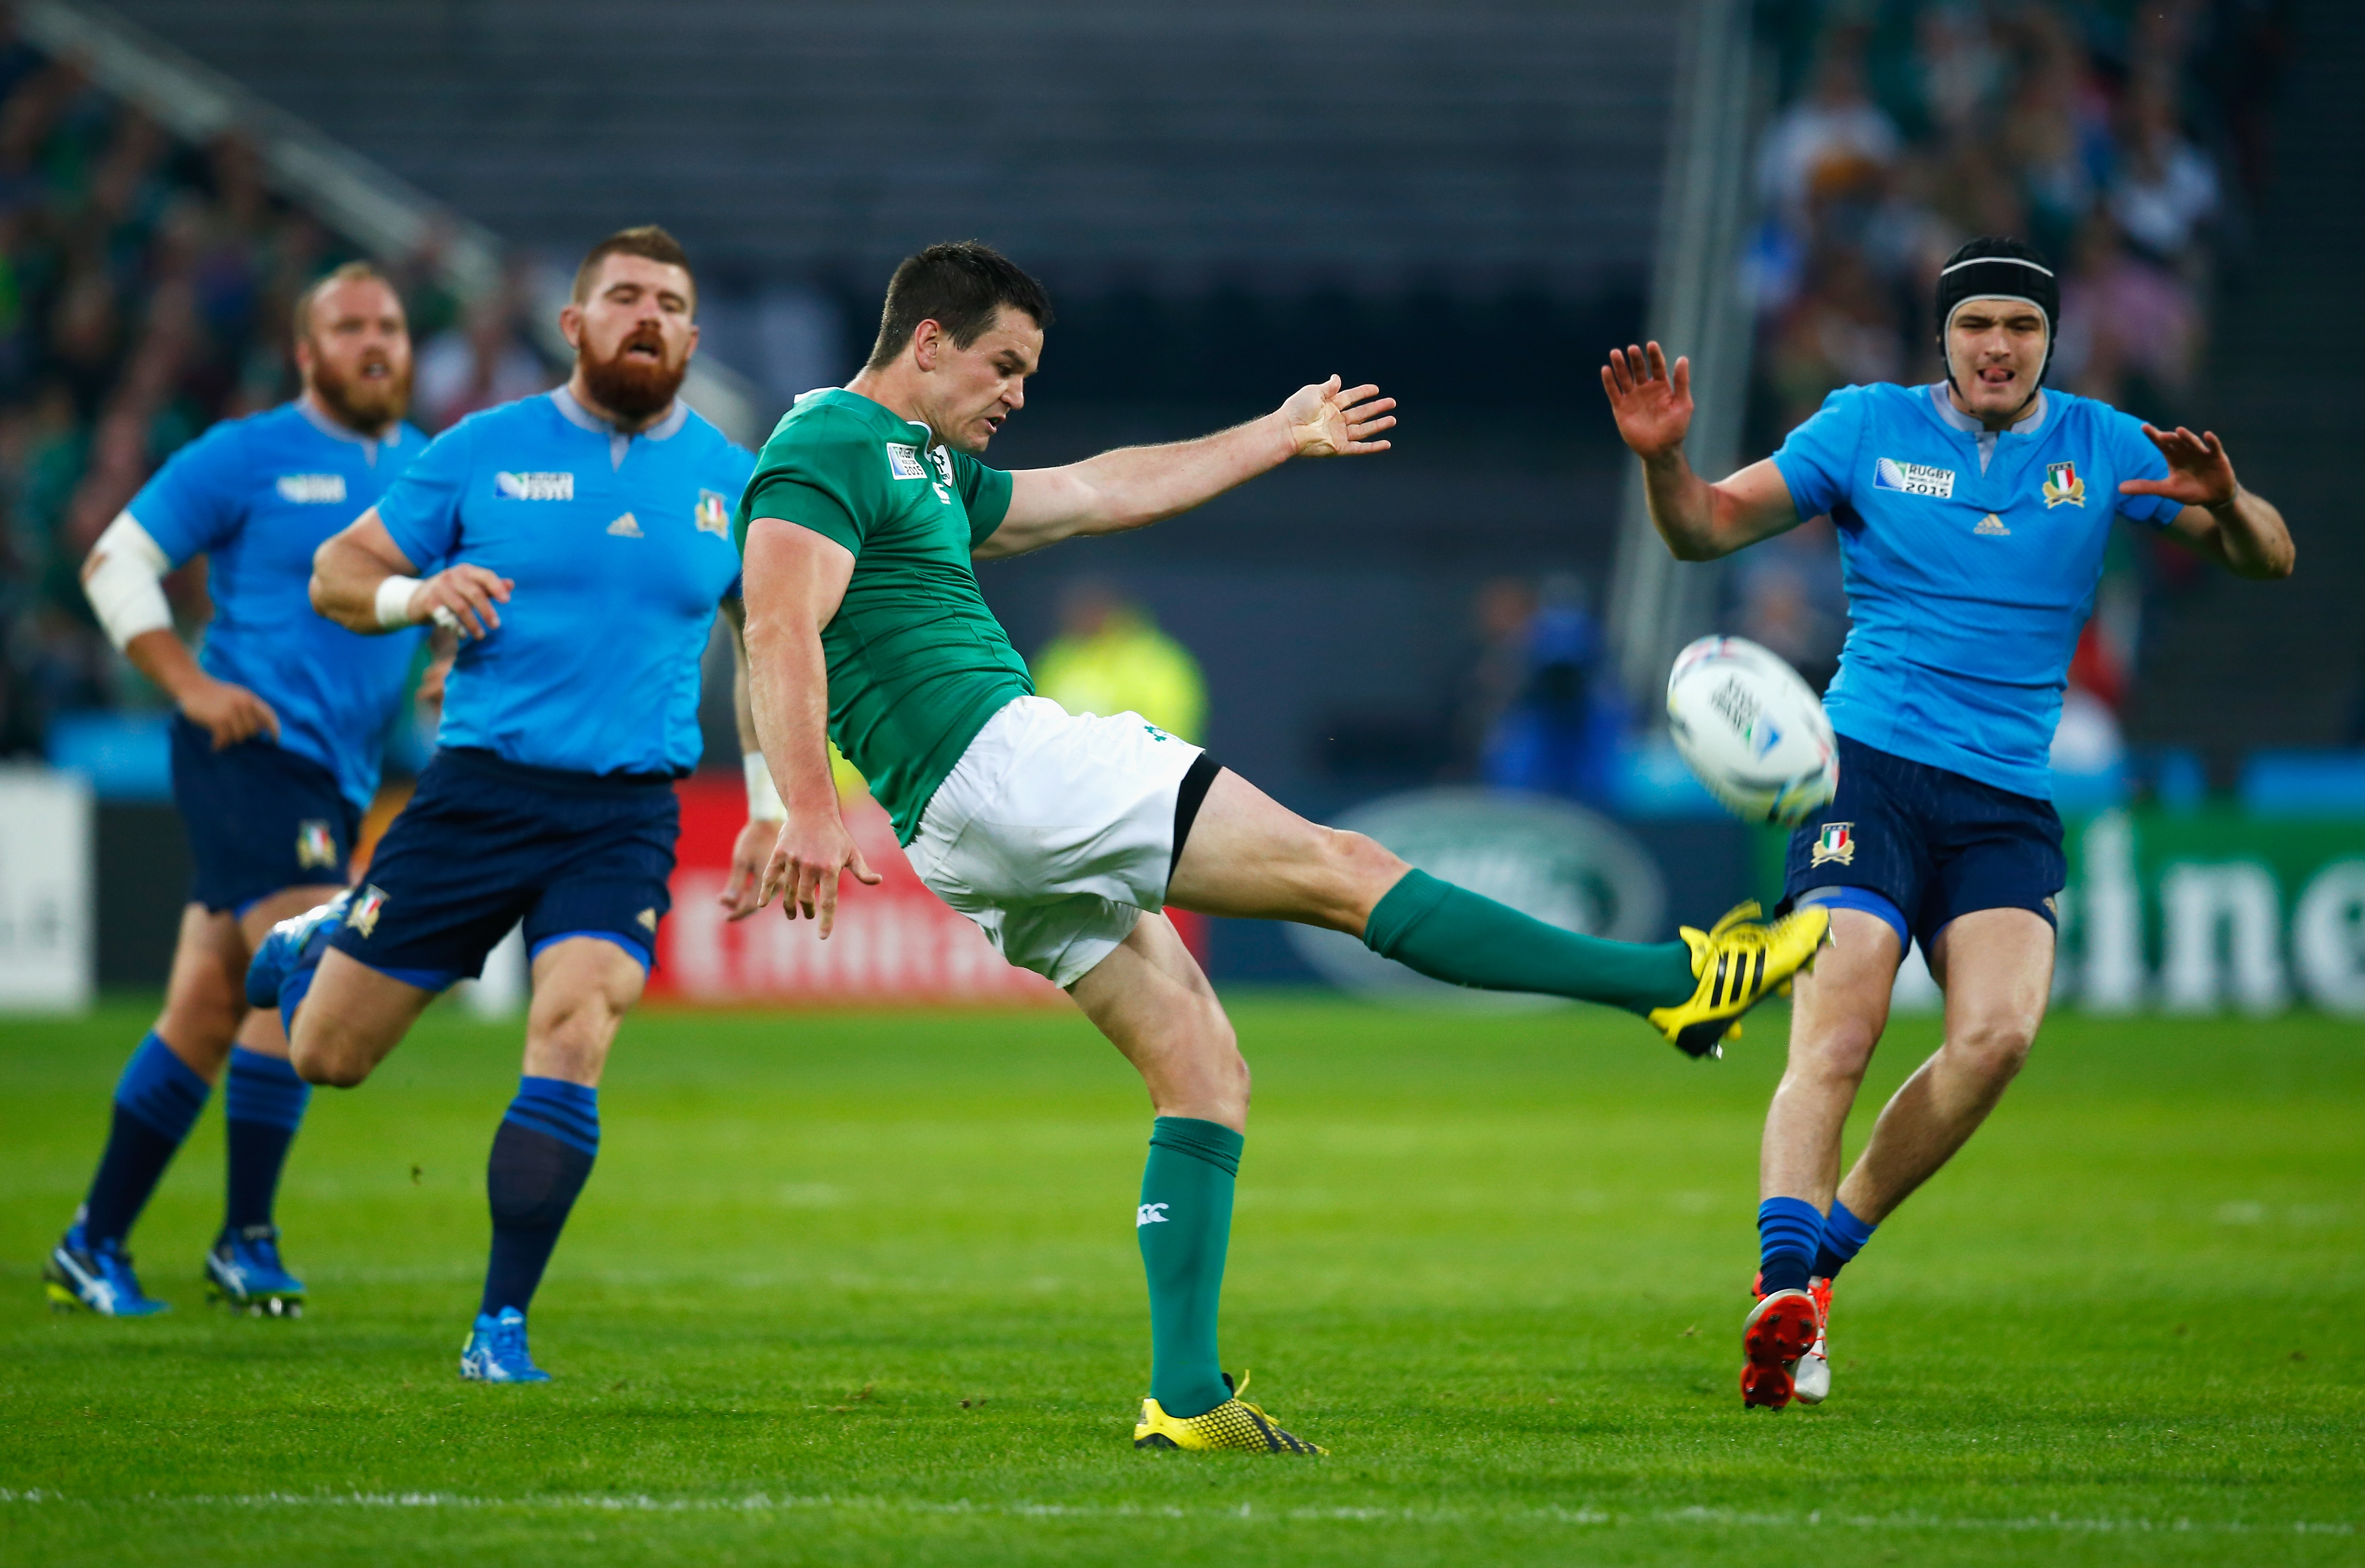 LONDON, ENGLAND - OCTOBER 04: Jonathan Sexton of Ireland kicks the ball during the 2015 Rugby World Cup Pool D match between Ireland and Italy at the Olympic Stadium on October 4, 2015 in London, United Kingdom.  (Photo by Mike Hewitt/Getty Images)